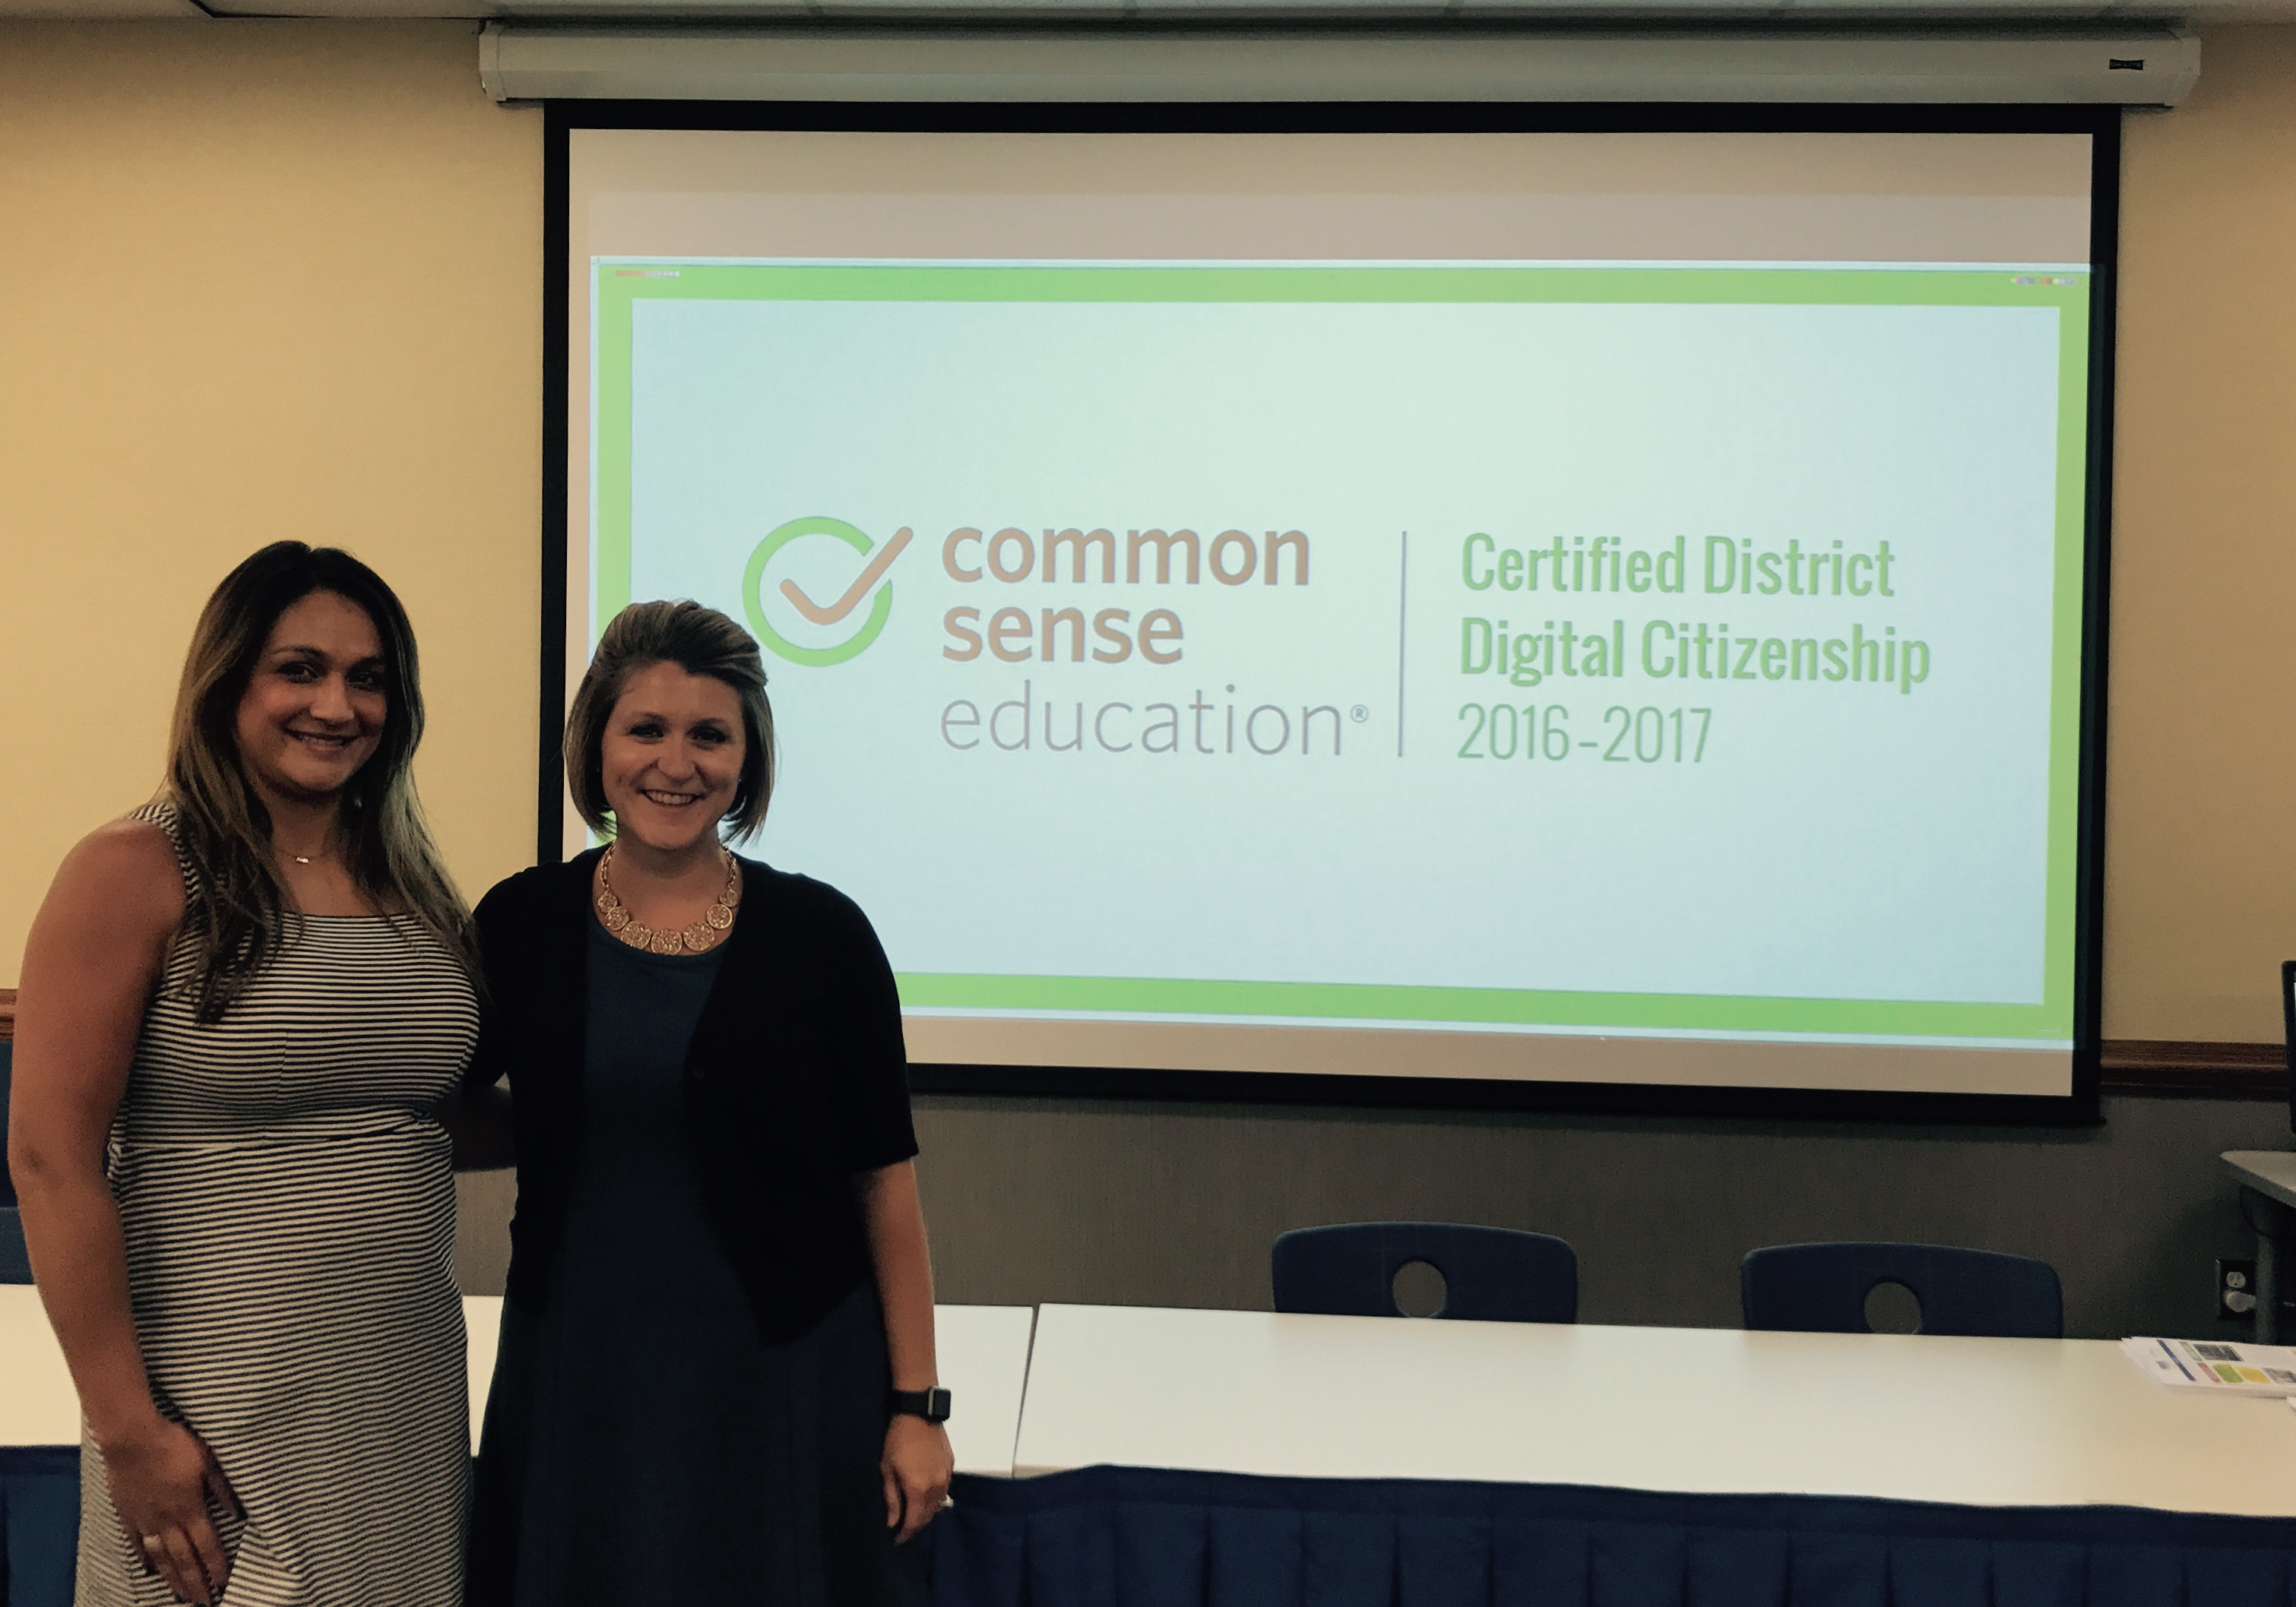 Lake Central has been recognized as a Common Sense Certified School District for our efforts in teaching digital citizenship to students and engaging the community in this very important topic as well. Thank you to Christina Perez, Jolene Bogacki, and all of our LC technology trainers and computer teachers who helped the district earn this distinction.